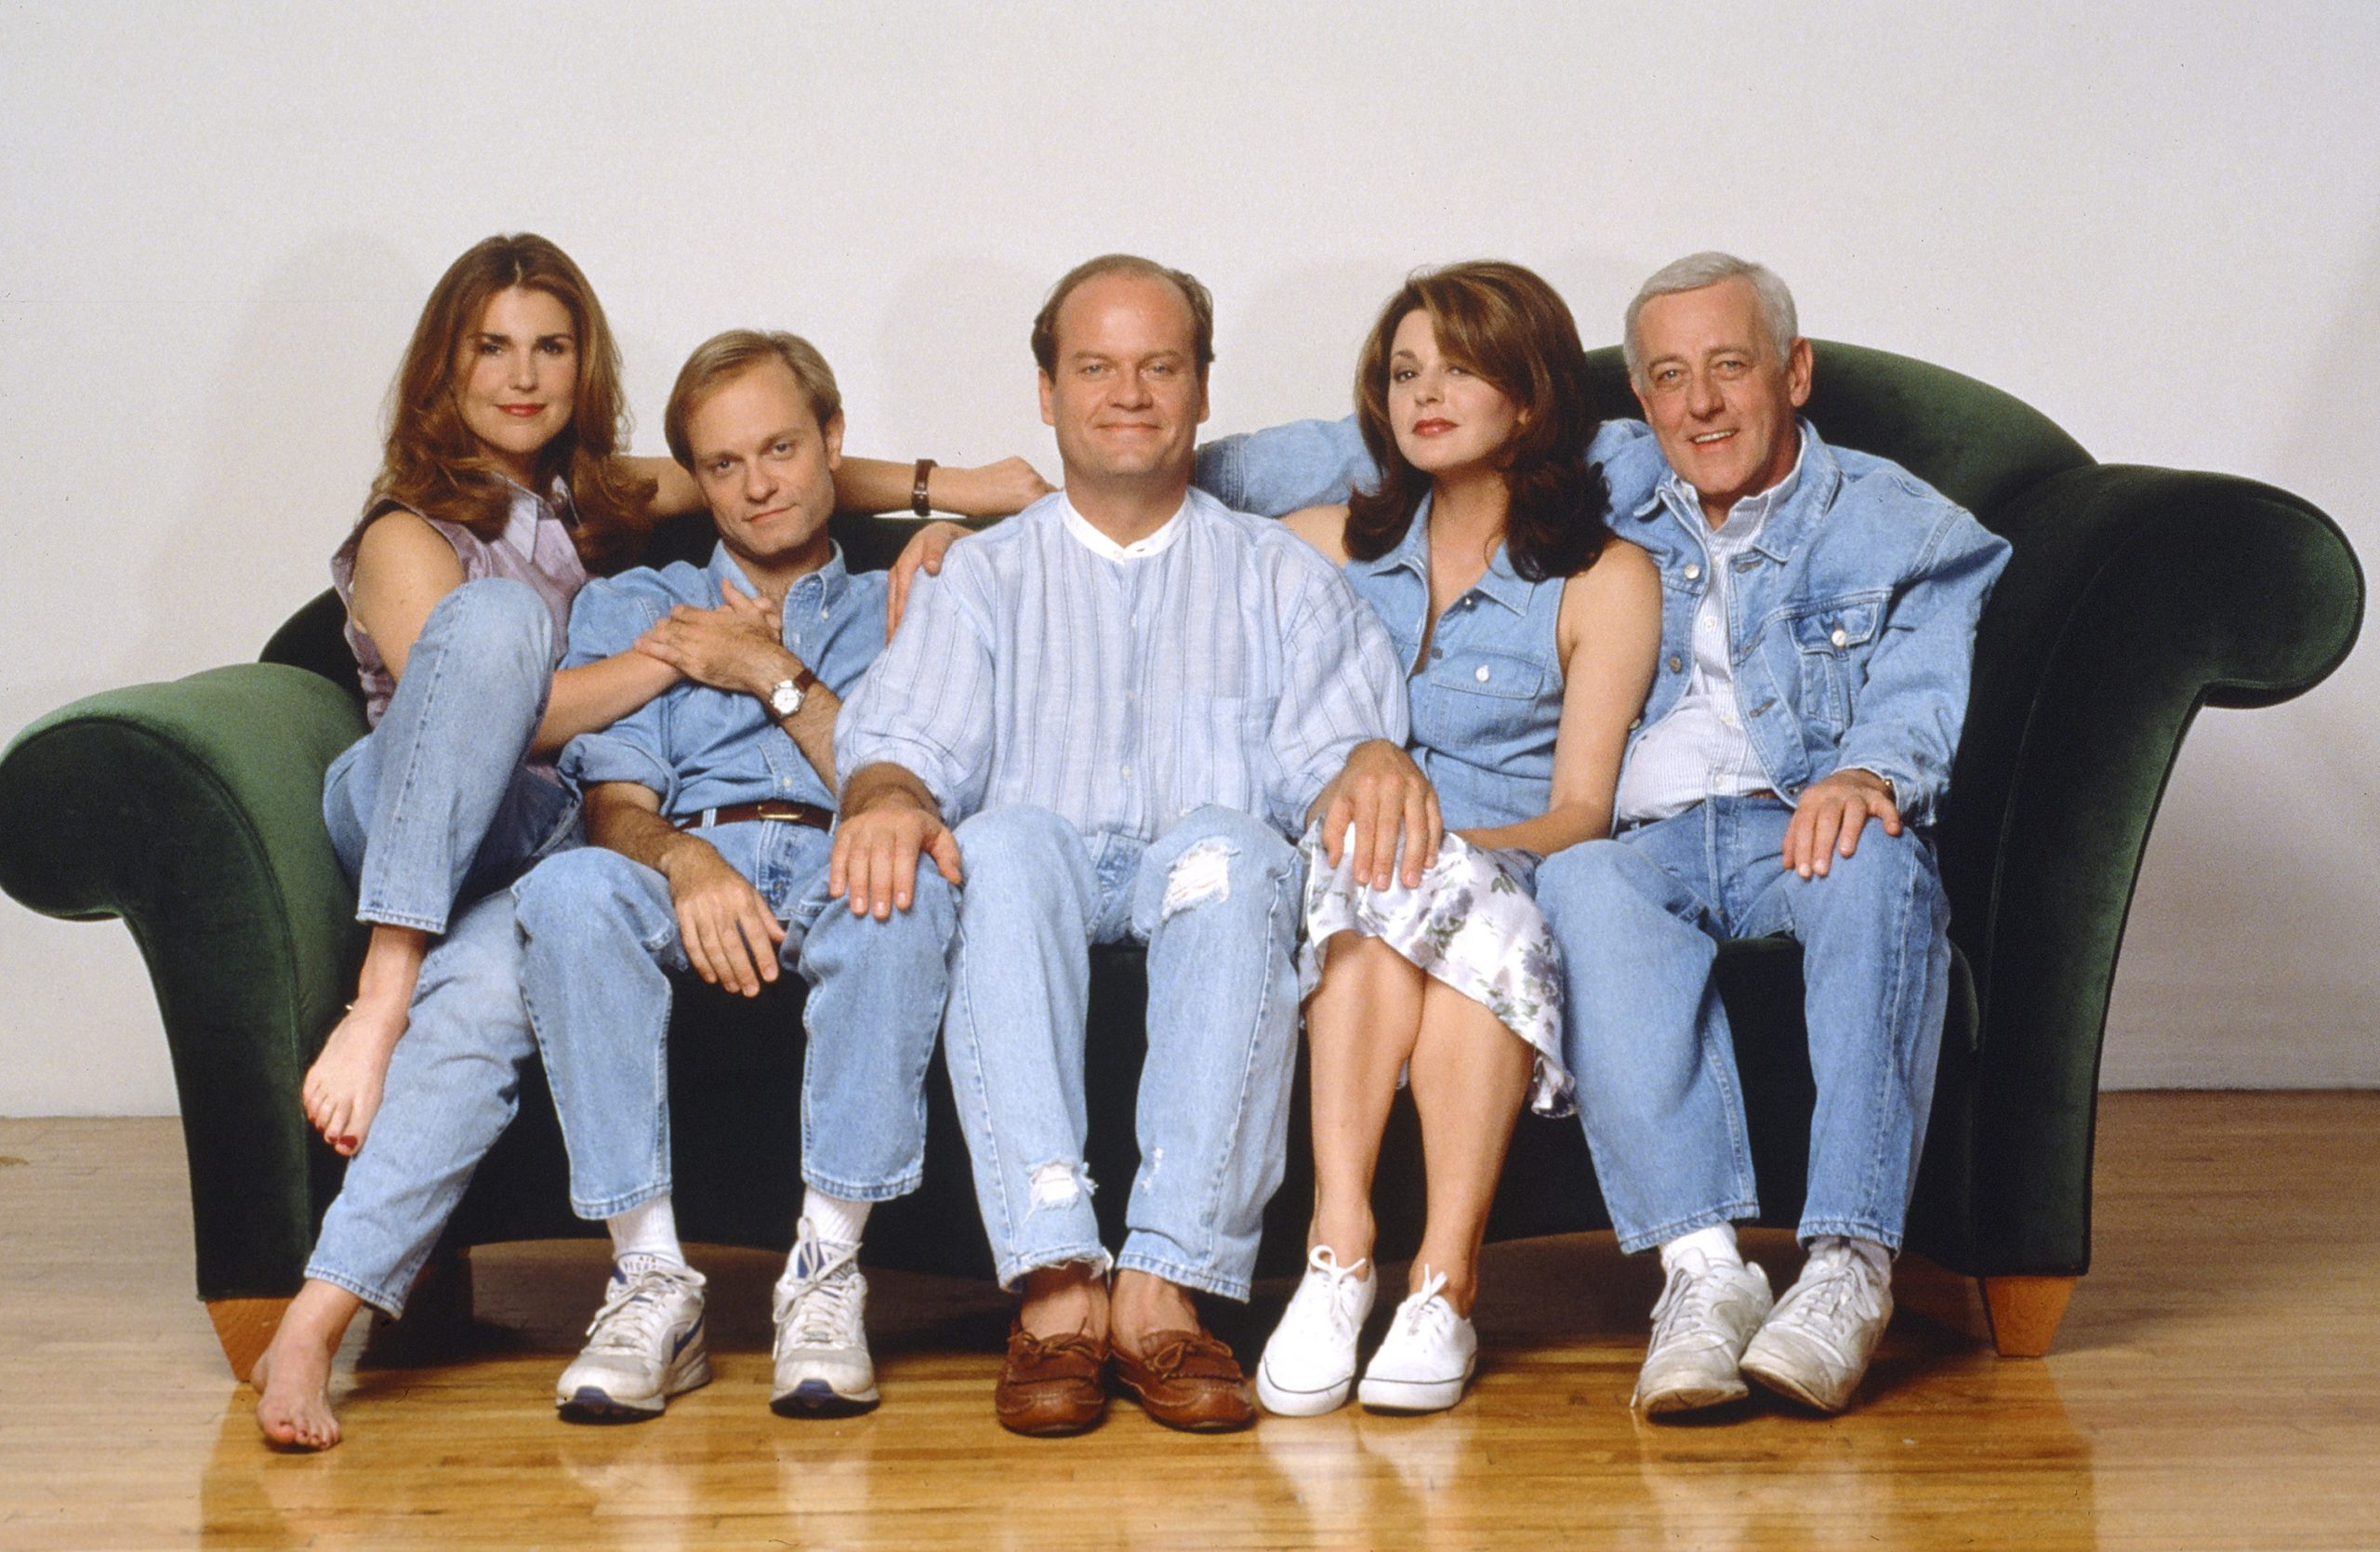 The original Frasier cast